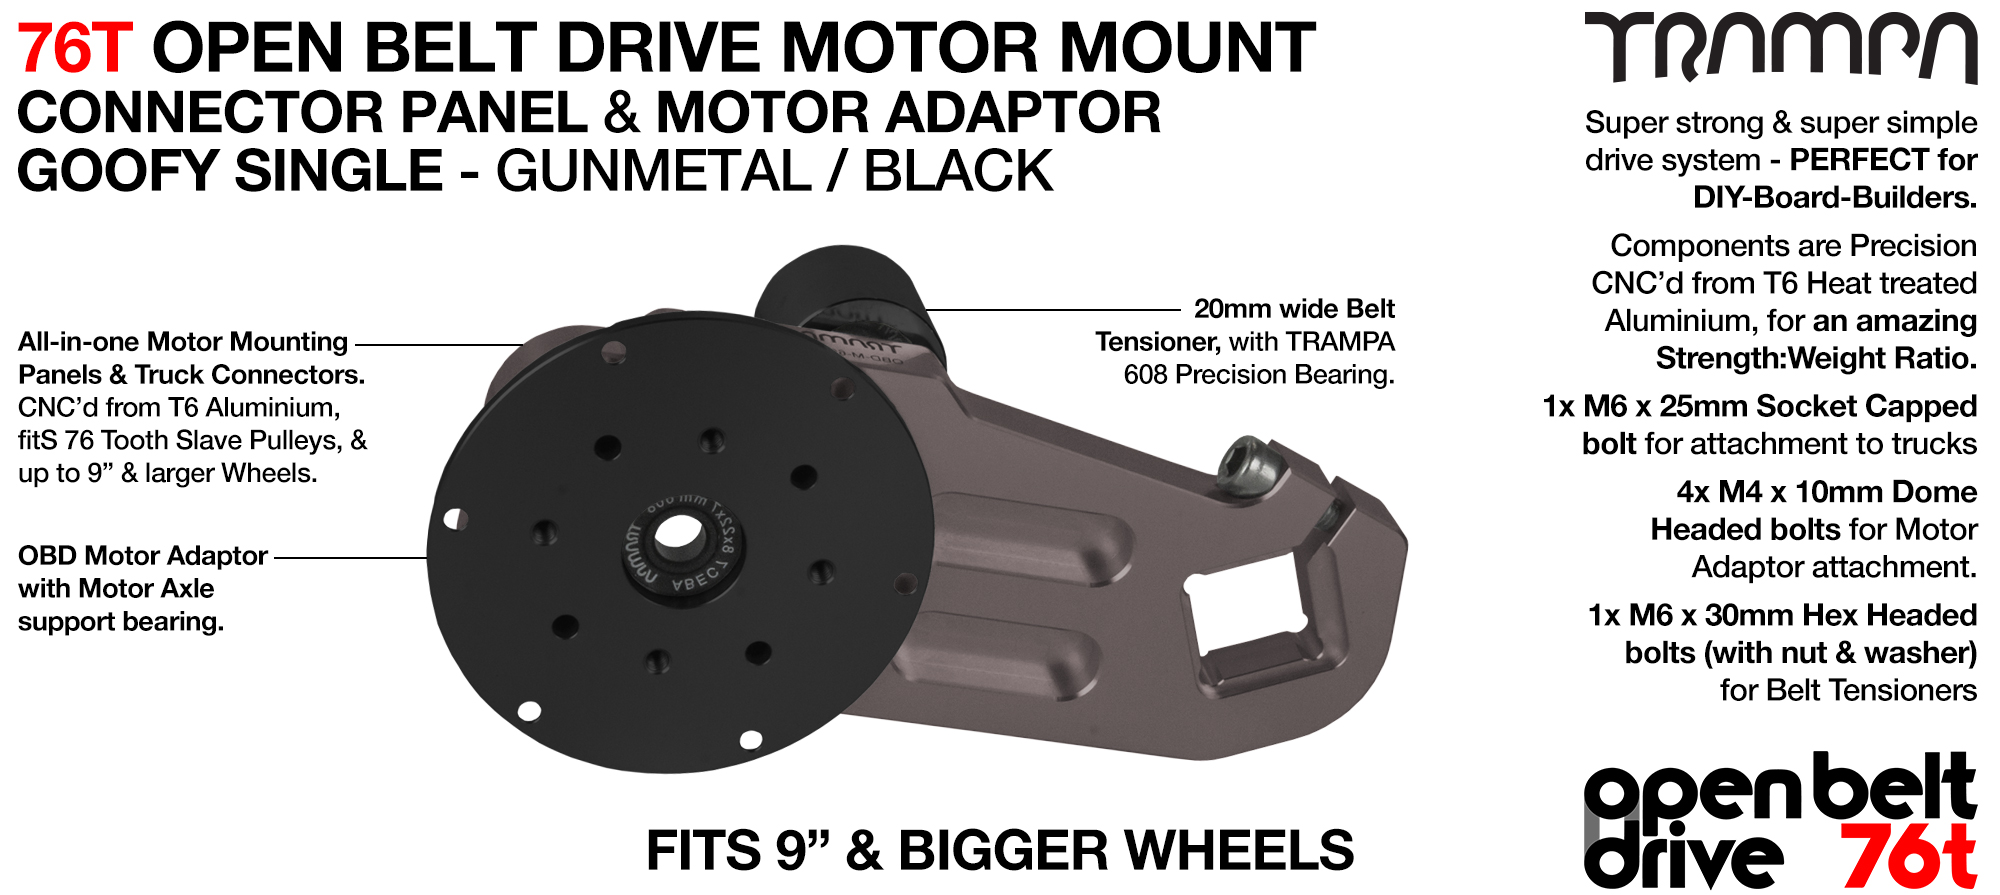 76T Open Belt Drive Motor Mount & Motor Adaptor - SINGLE GUNMETAL